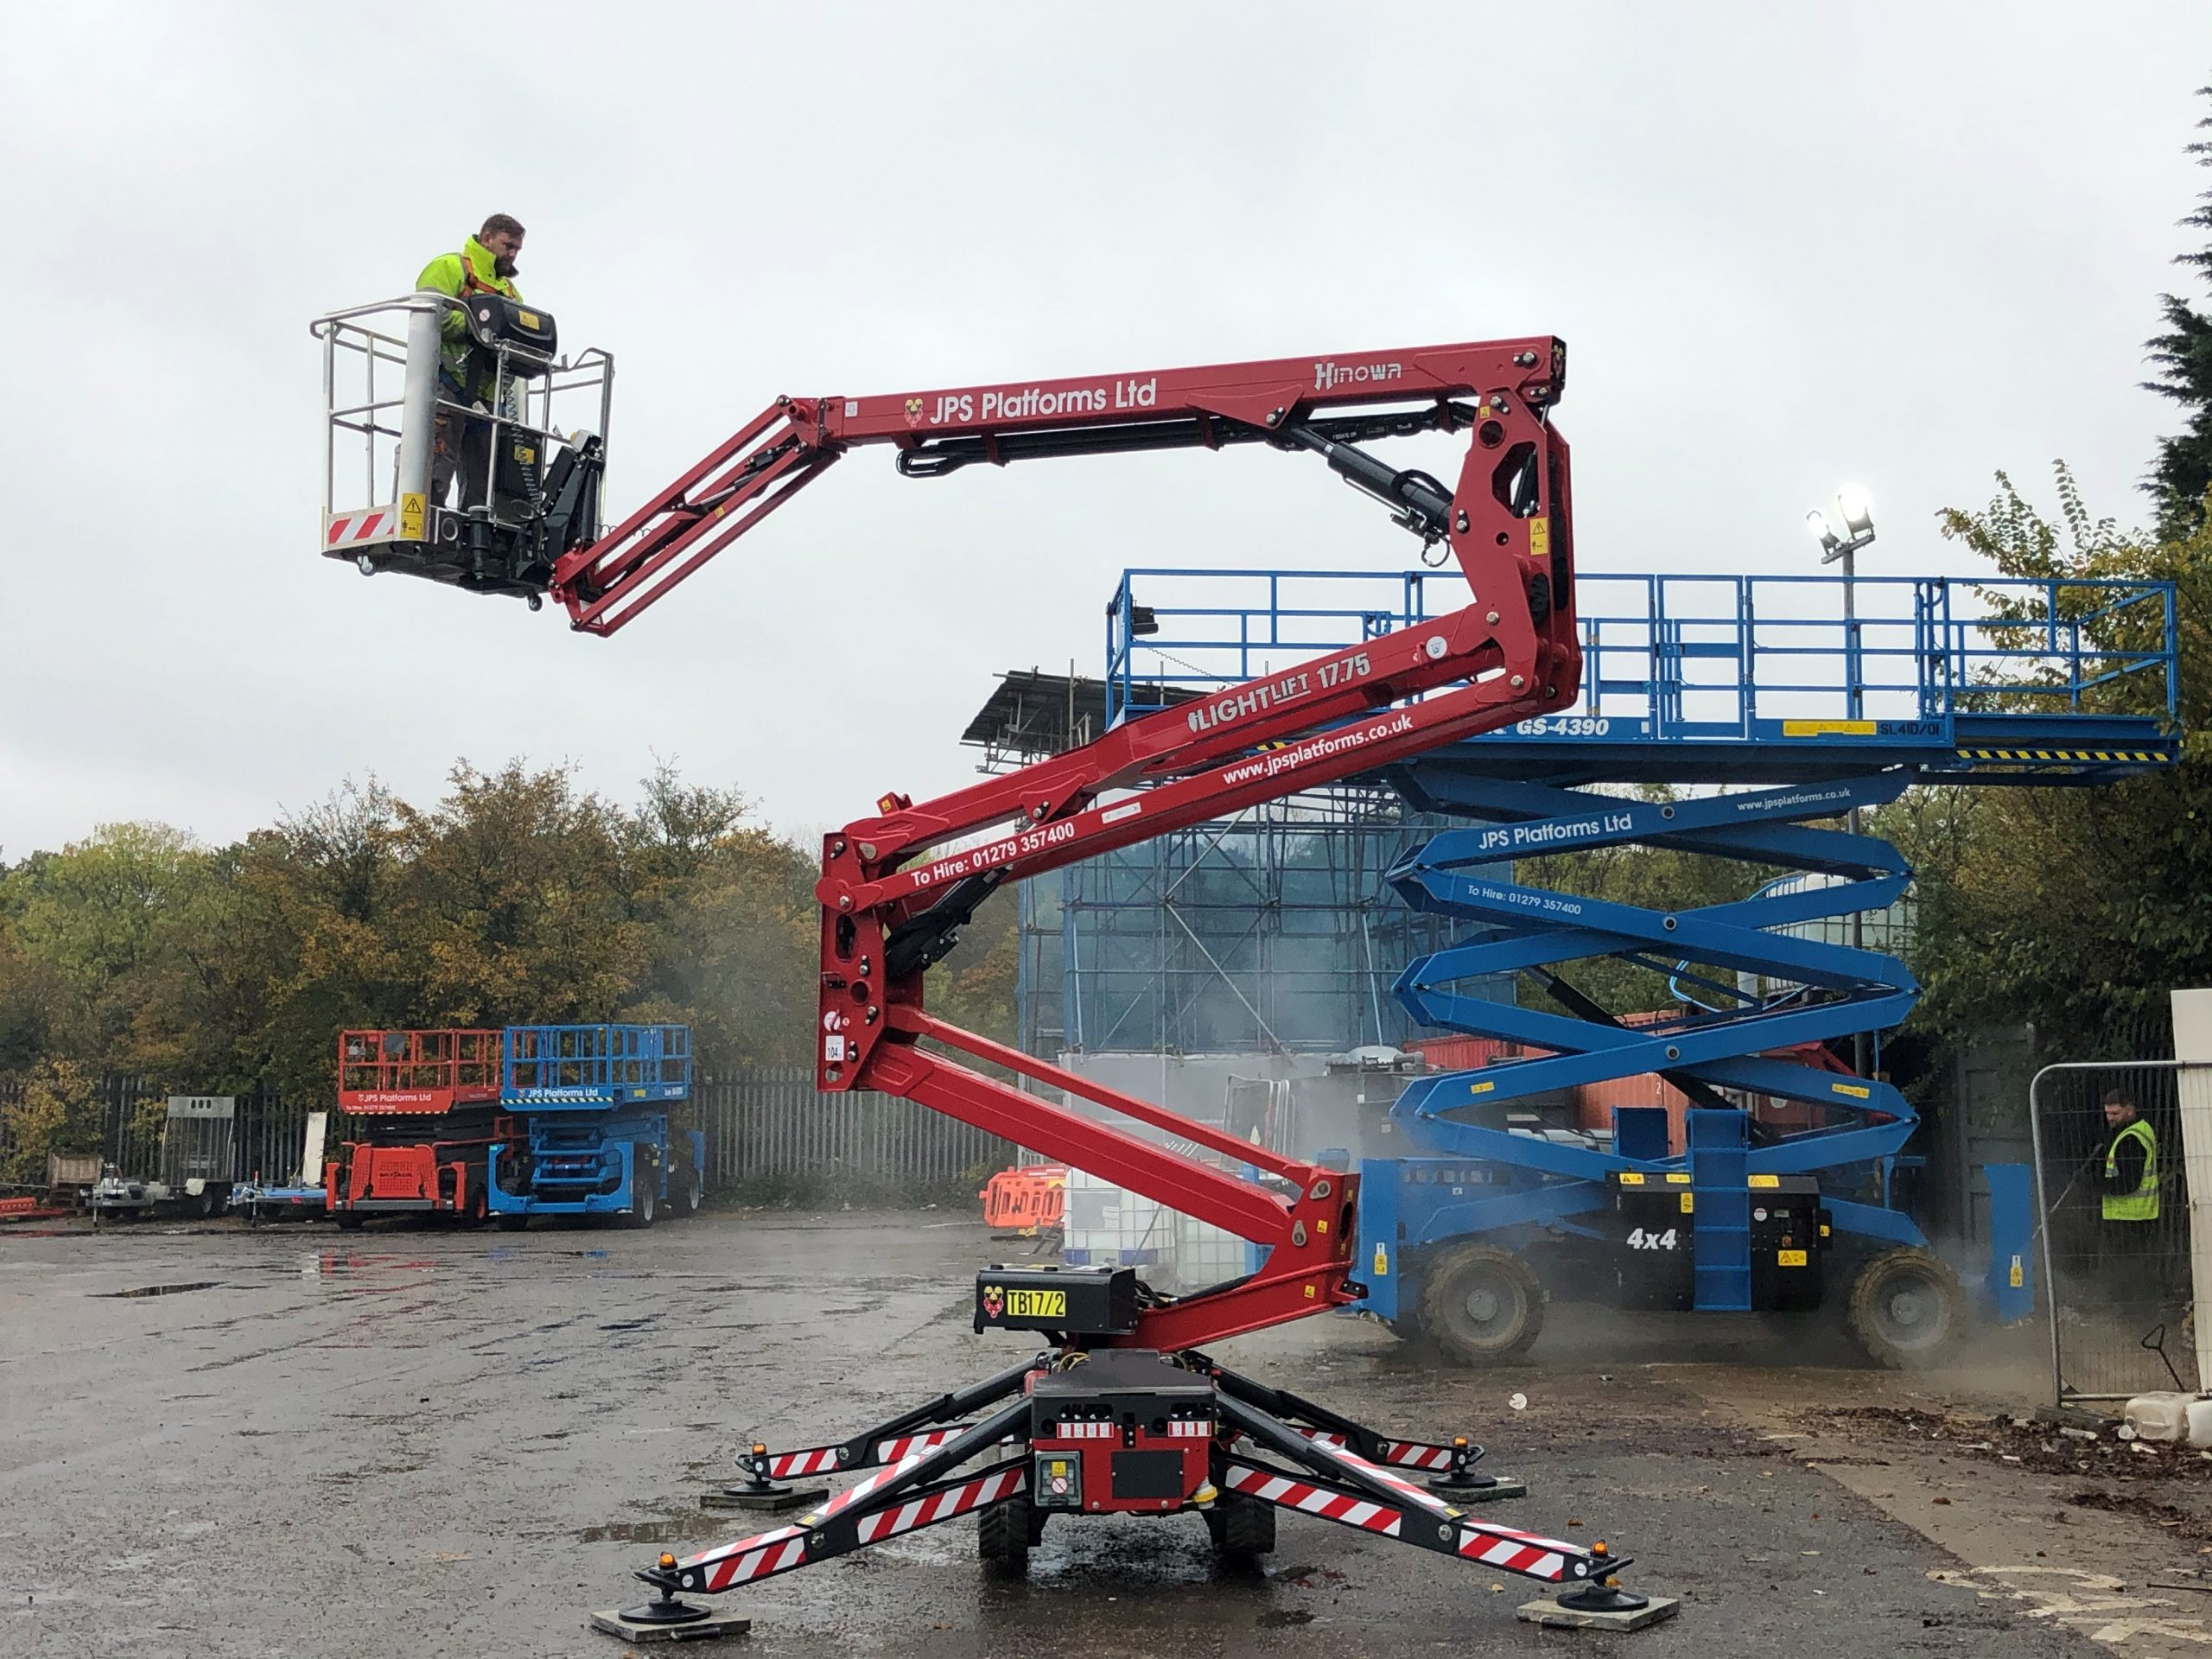 image of hinowa spider lift